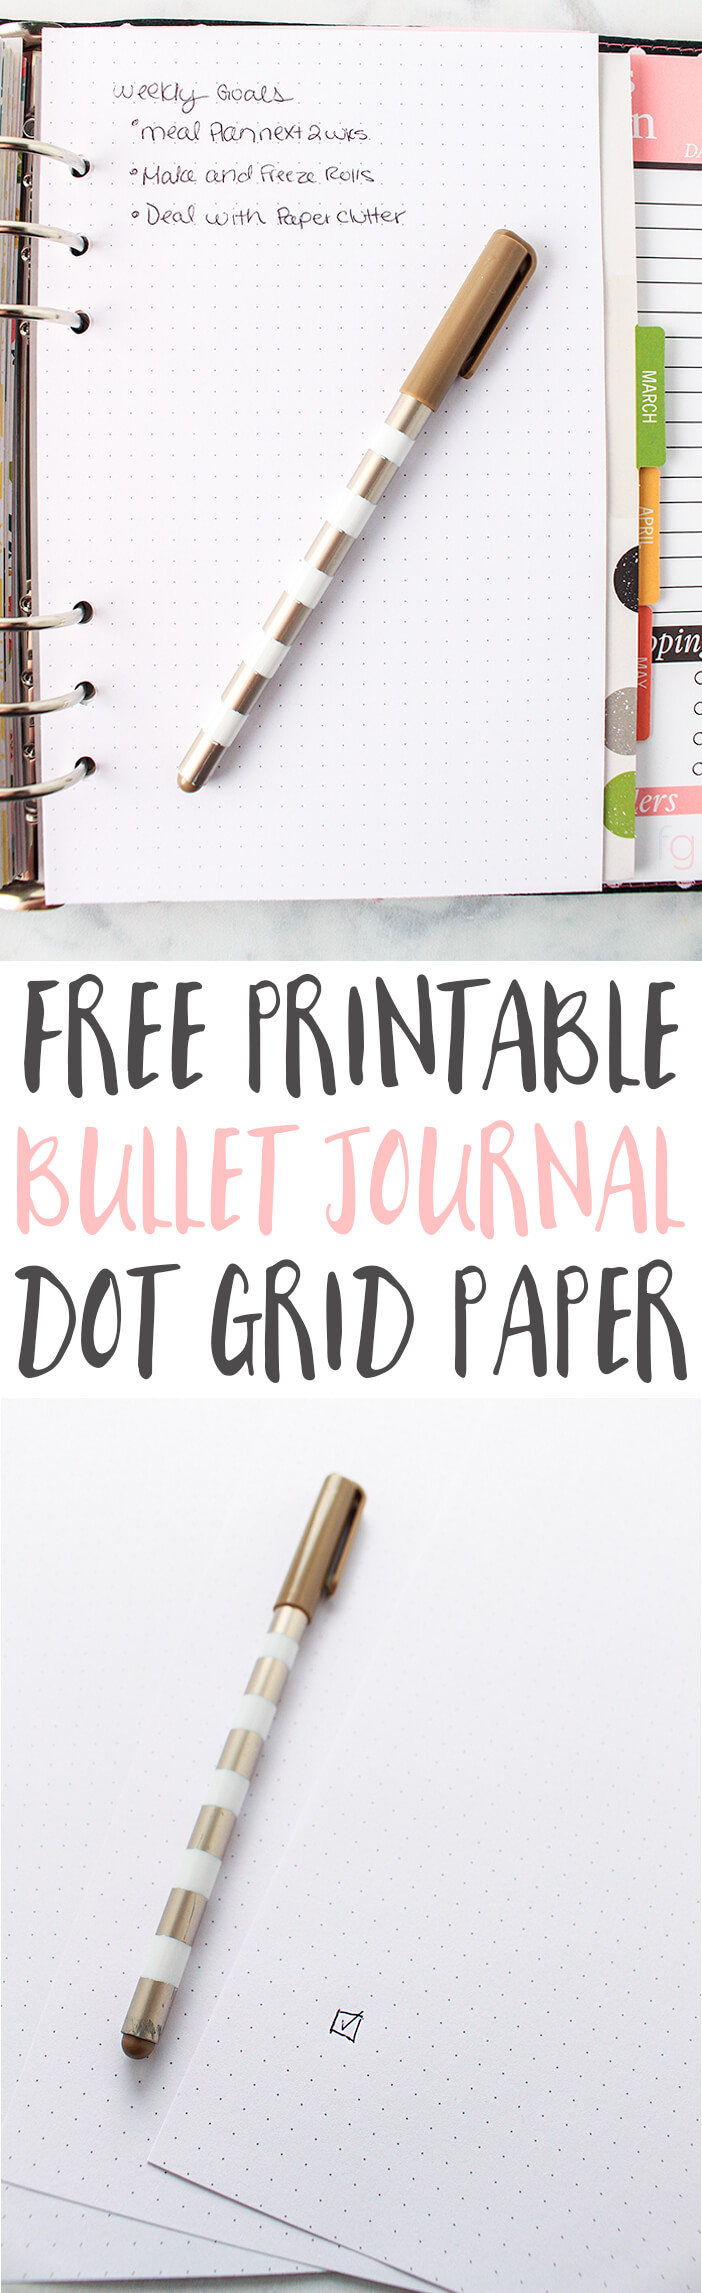 picture about A5 Dot Grid Printable called Dot Grid Paper Printable - Absolutely free Bullet Magazine Webpage